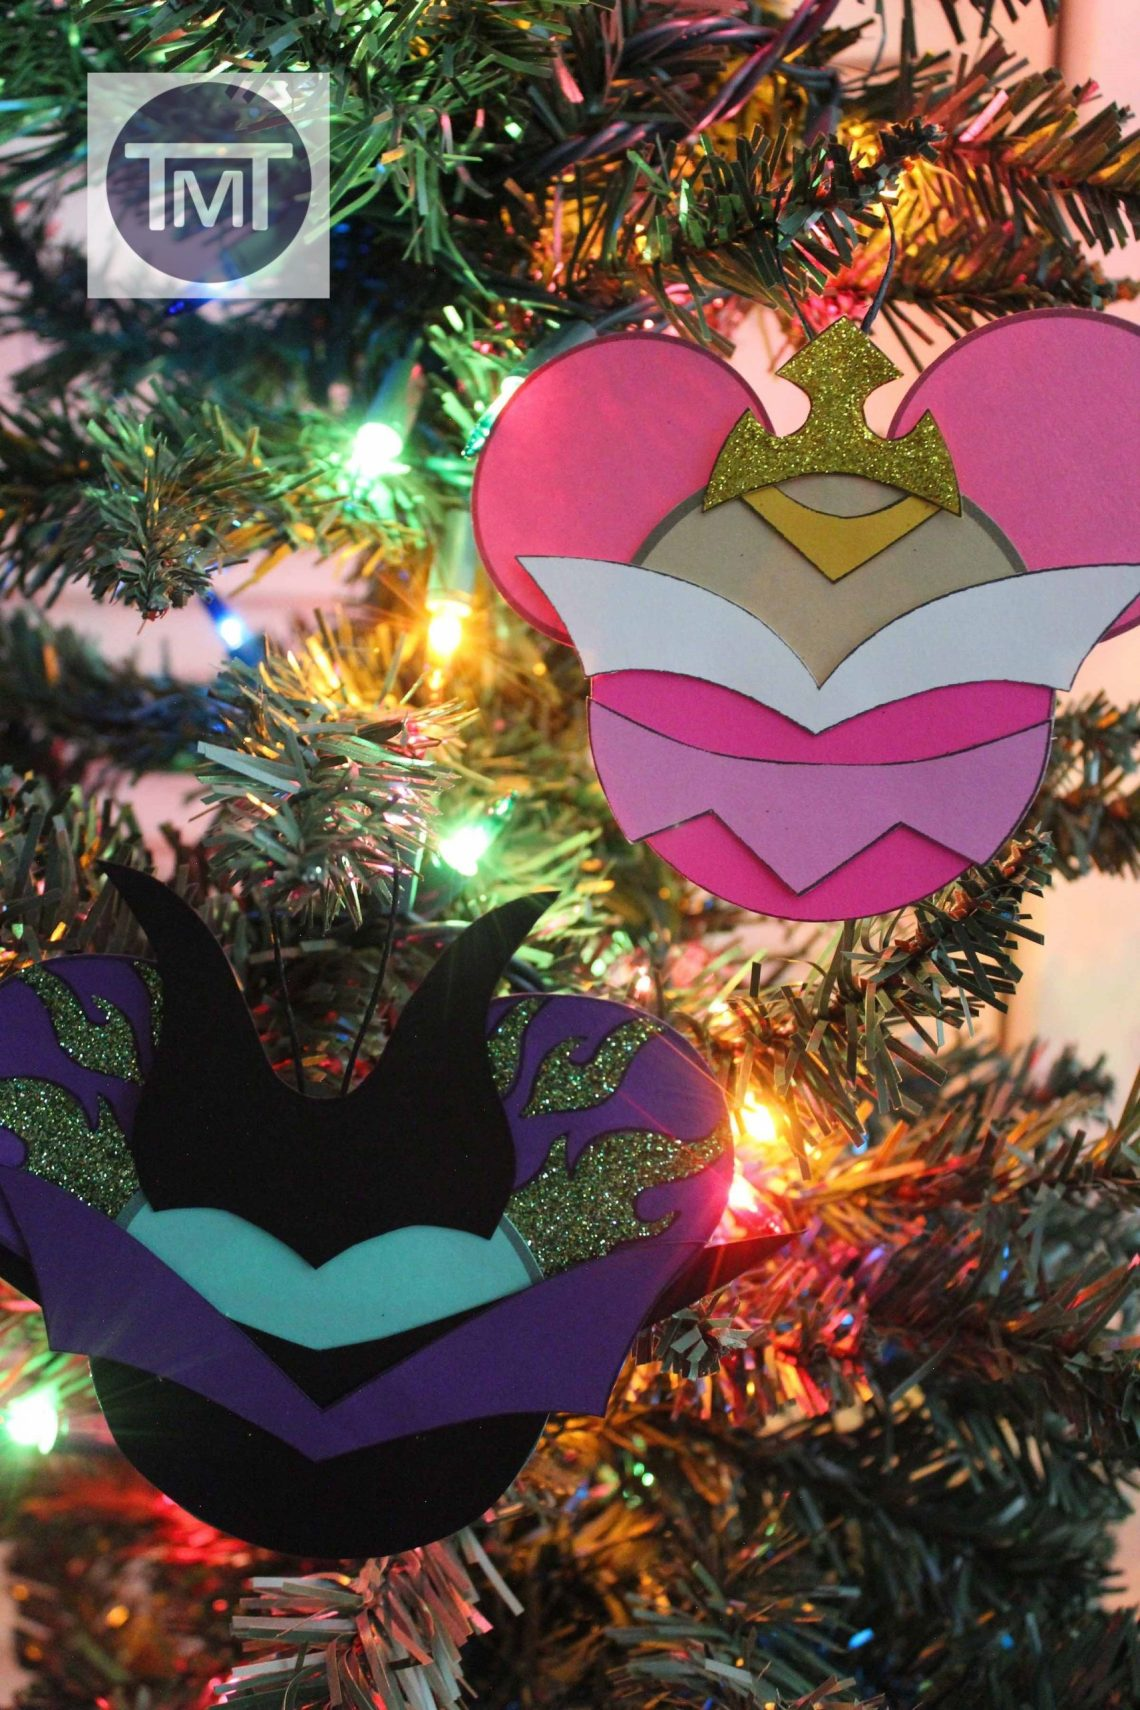 Maleficent and Sleeping Beauty Inspired Christmas